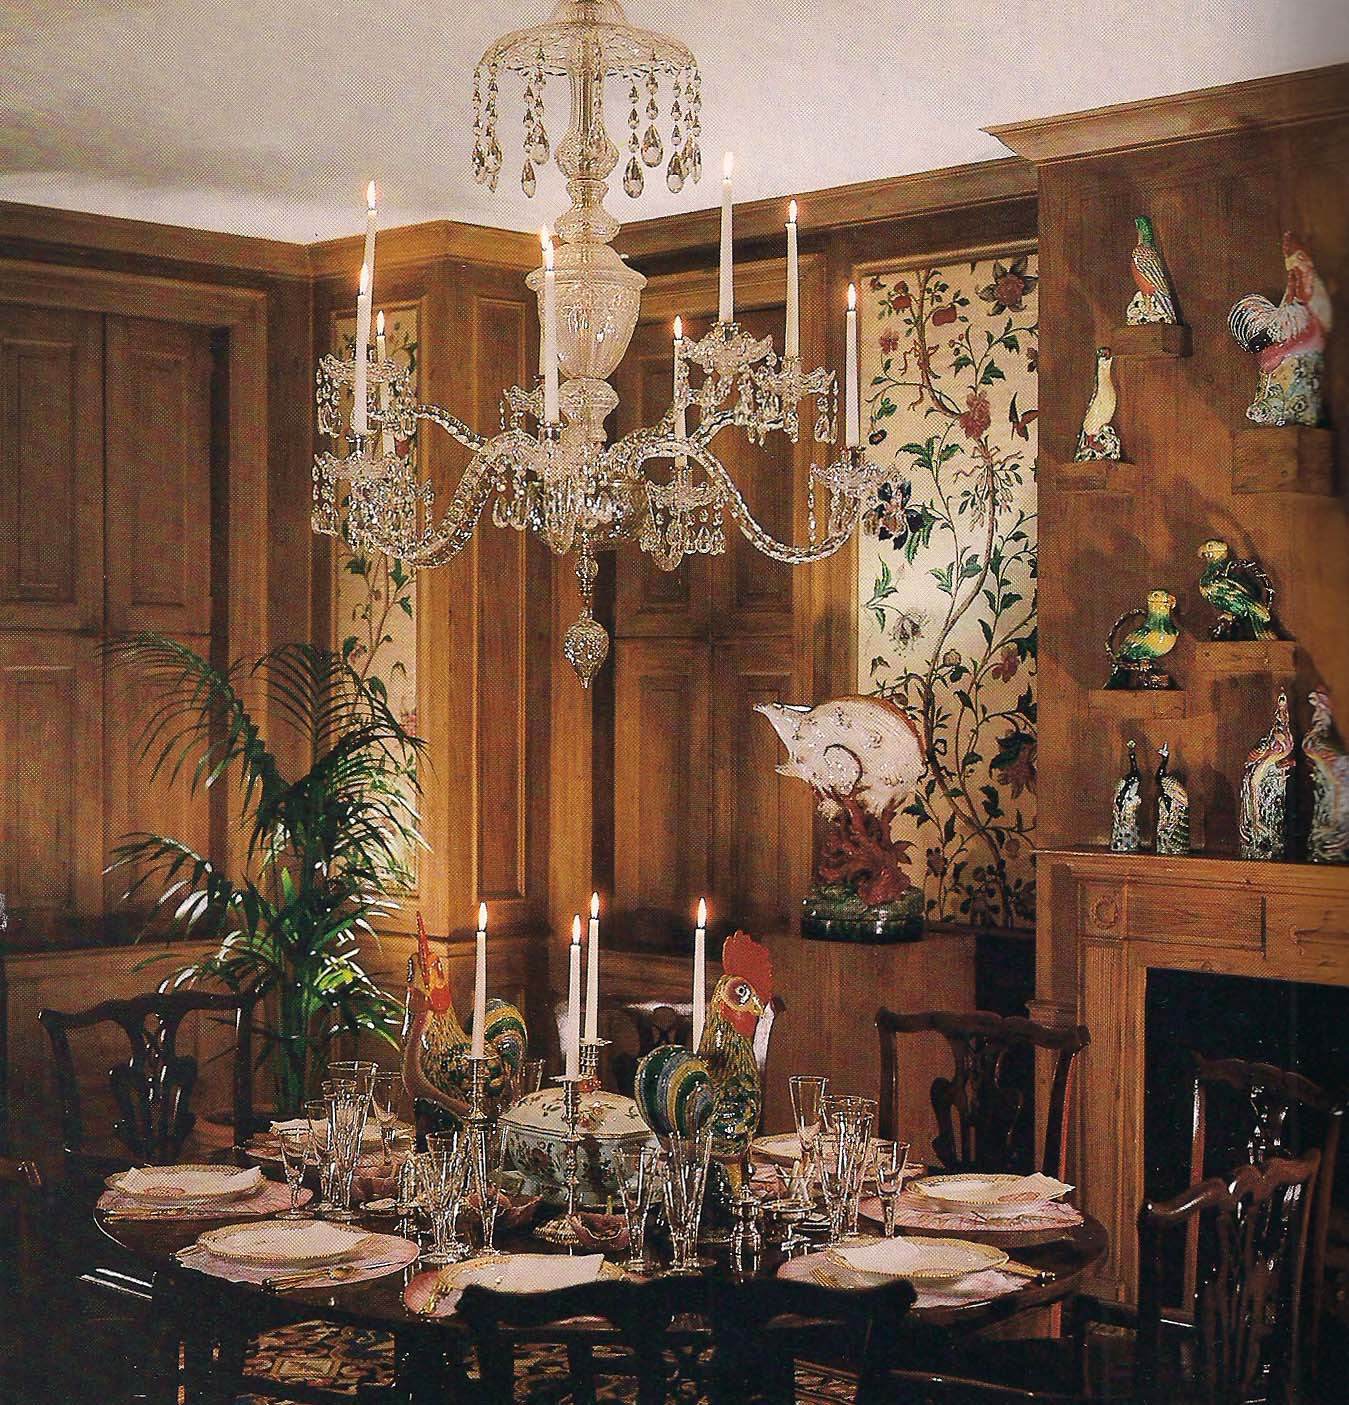 The Kempner Dining Room Photo By Derry Moore For Architectural Digest